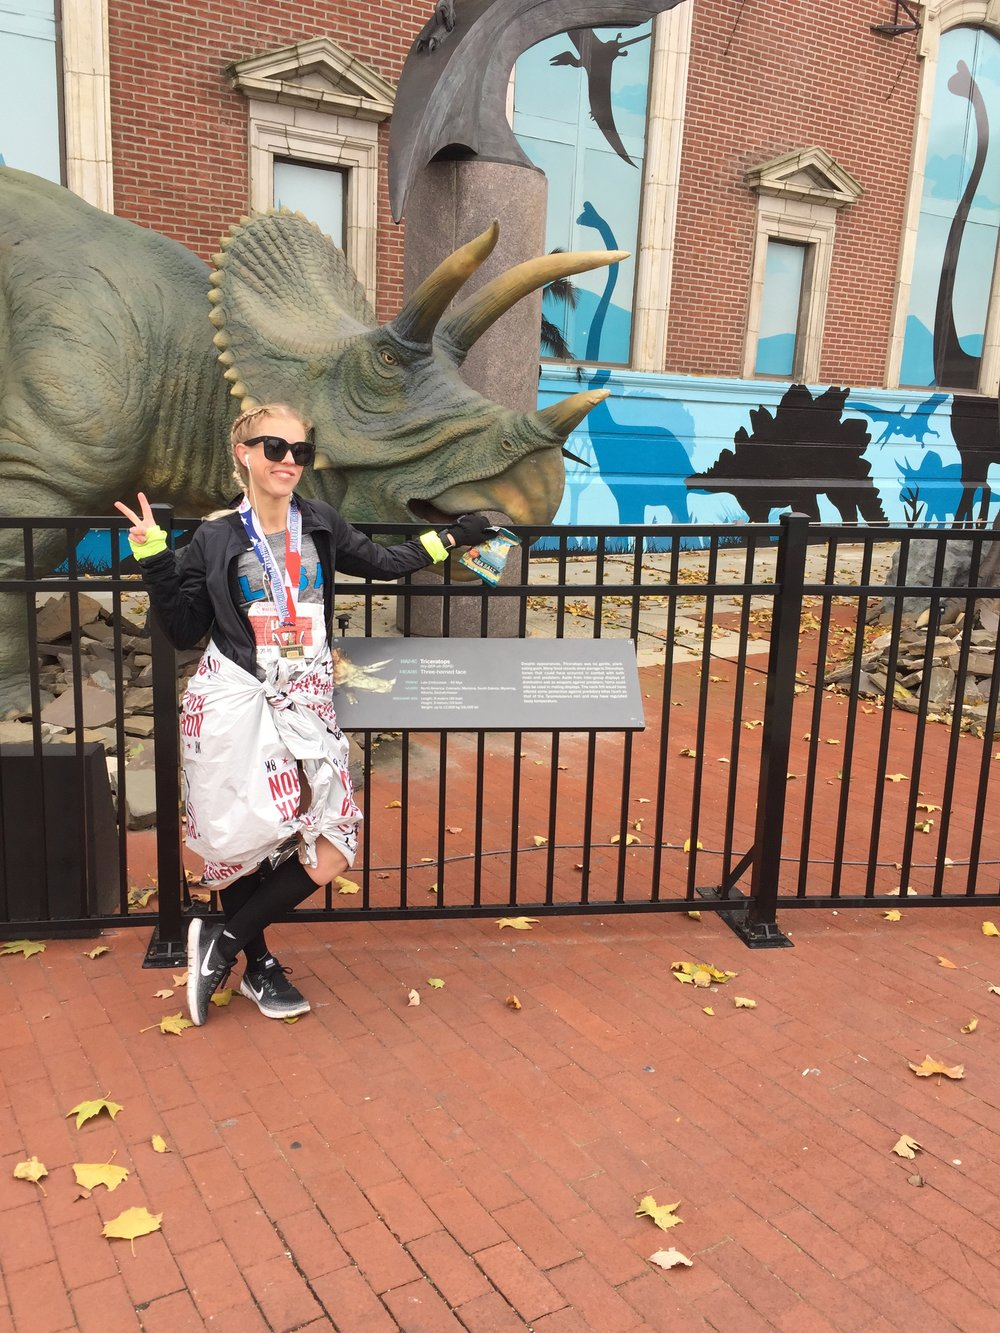 just chilling with some dinosaurs in Philly